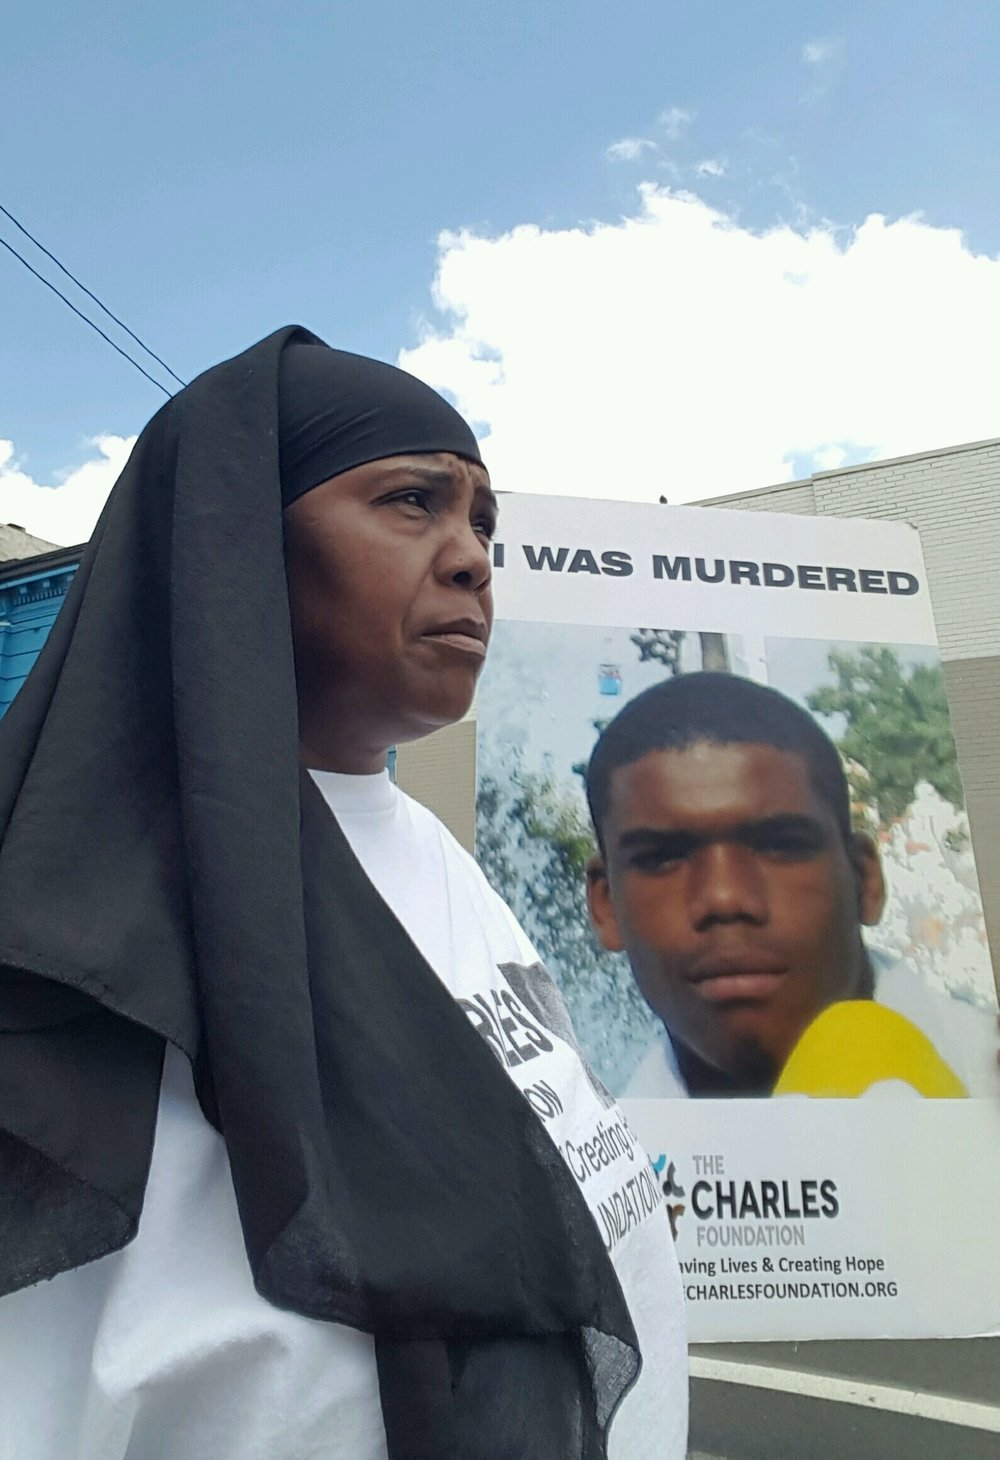 The Founder of The CHARLES Foundation, Movita Johnson-Harrell, with a poster of Charles Johnson